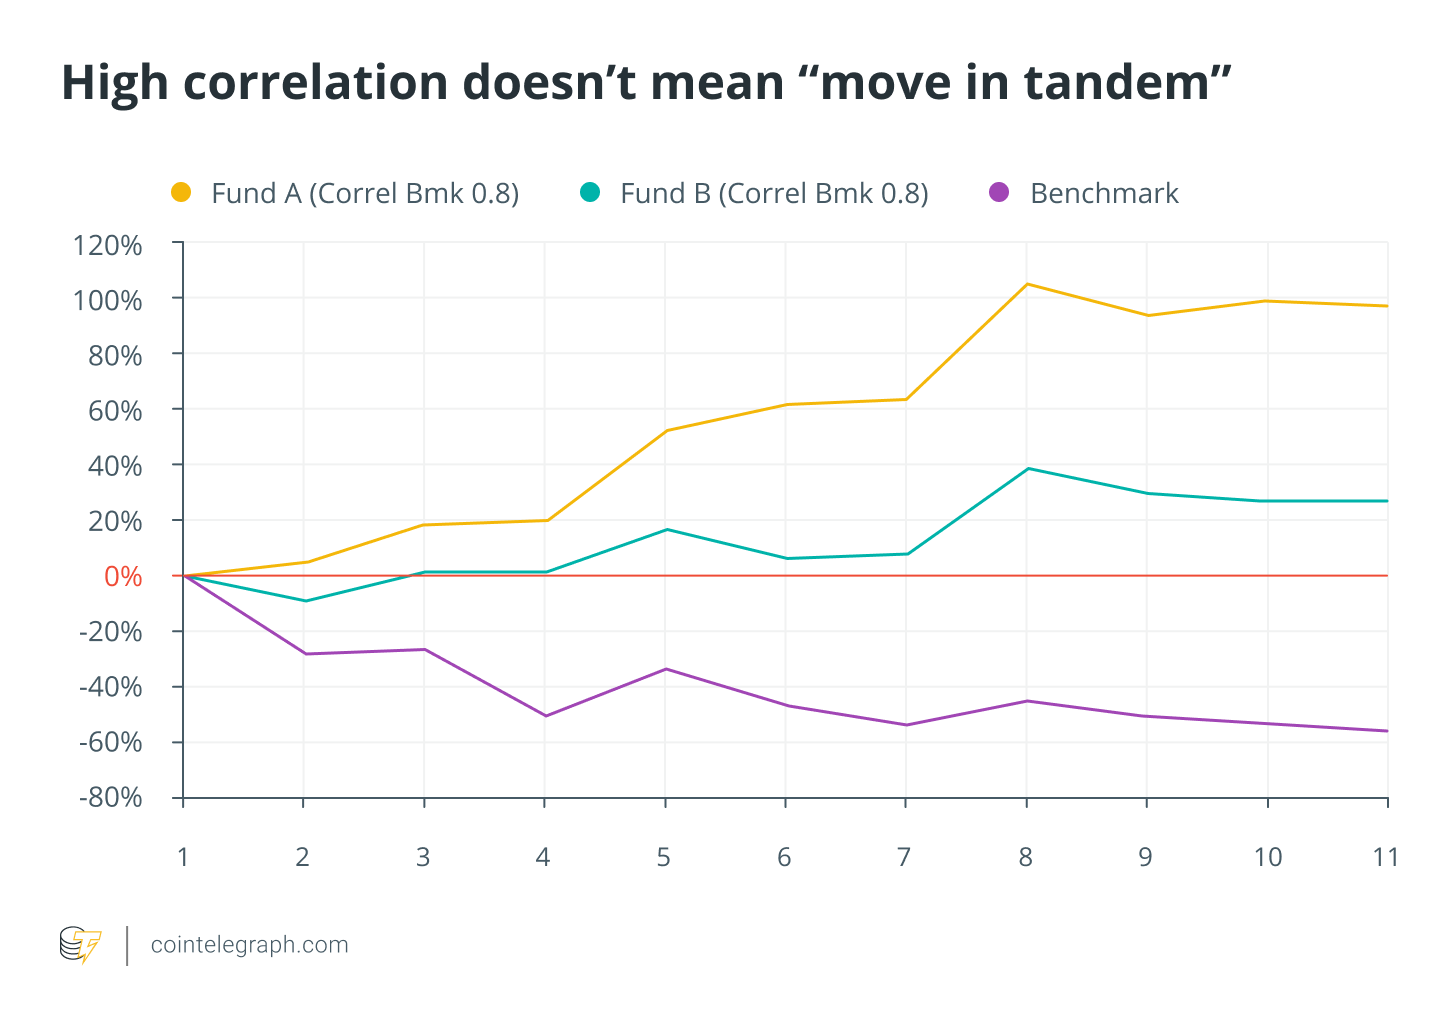 High correlation does't mean move in tandem